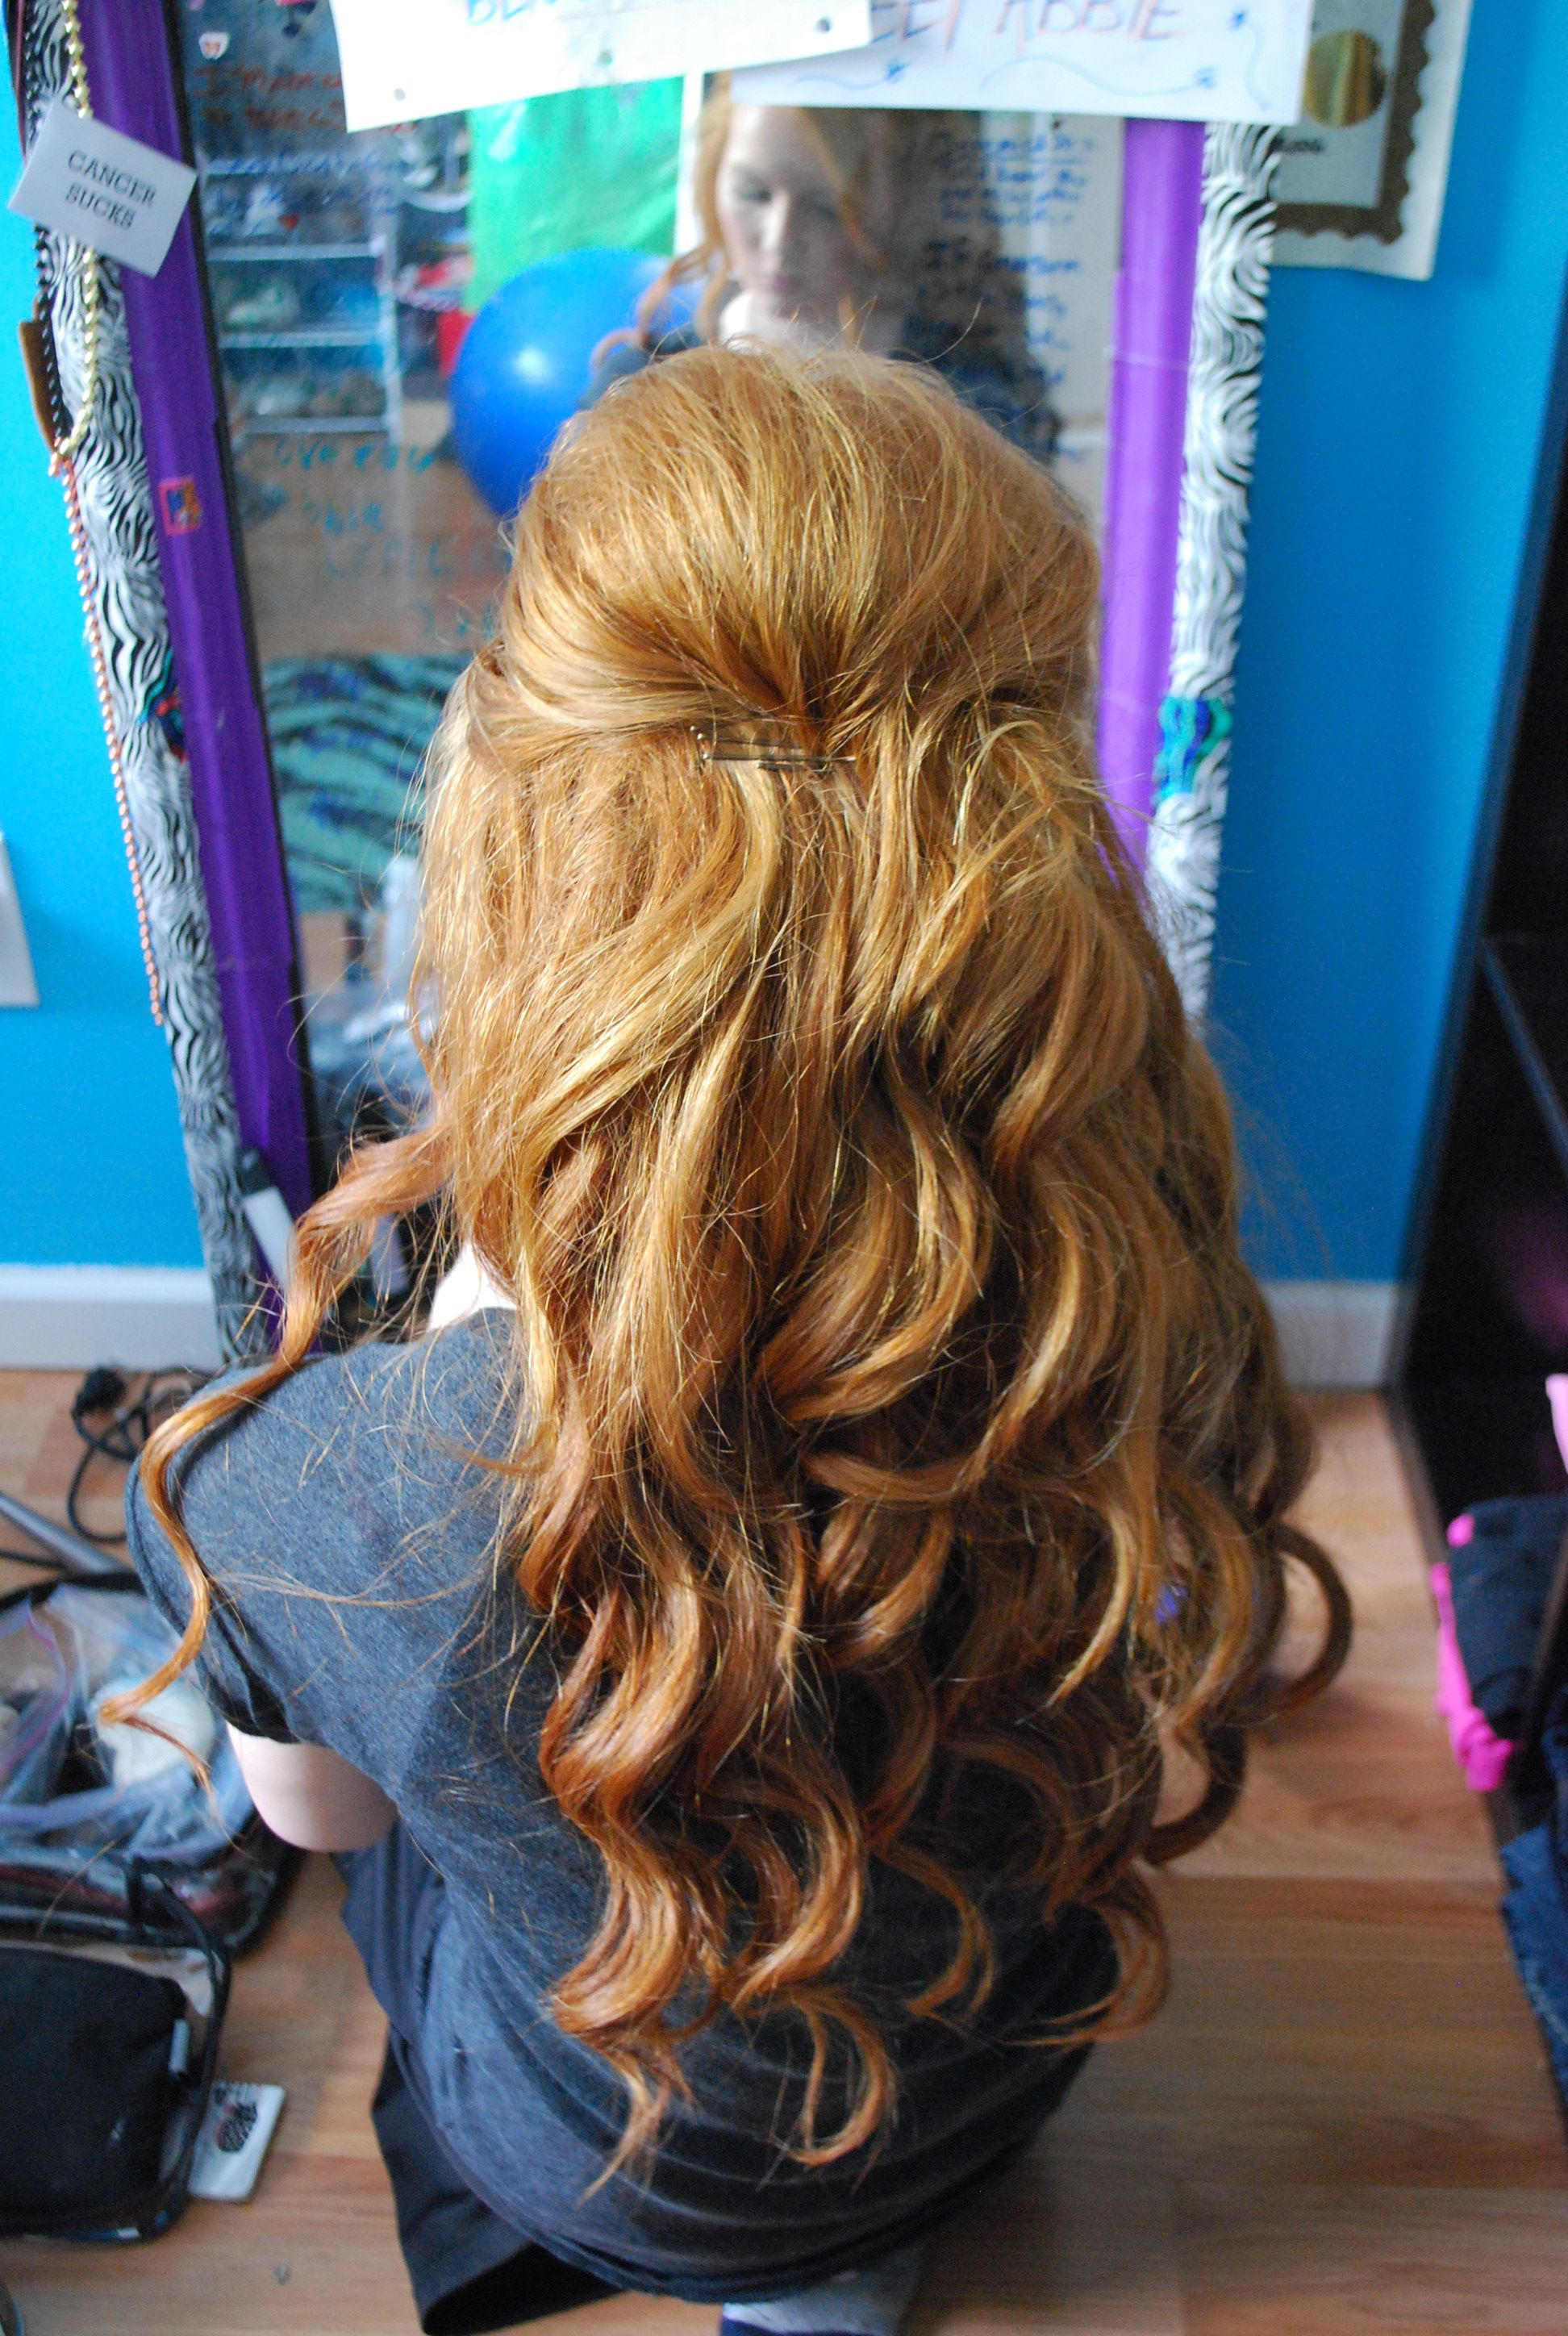 Prom hair idea love it pinterest prom hair prom and hair style